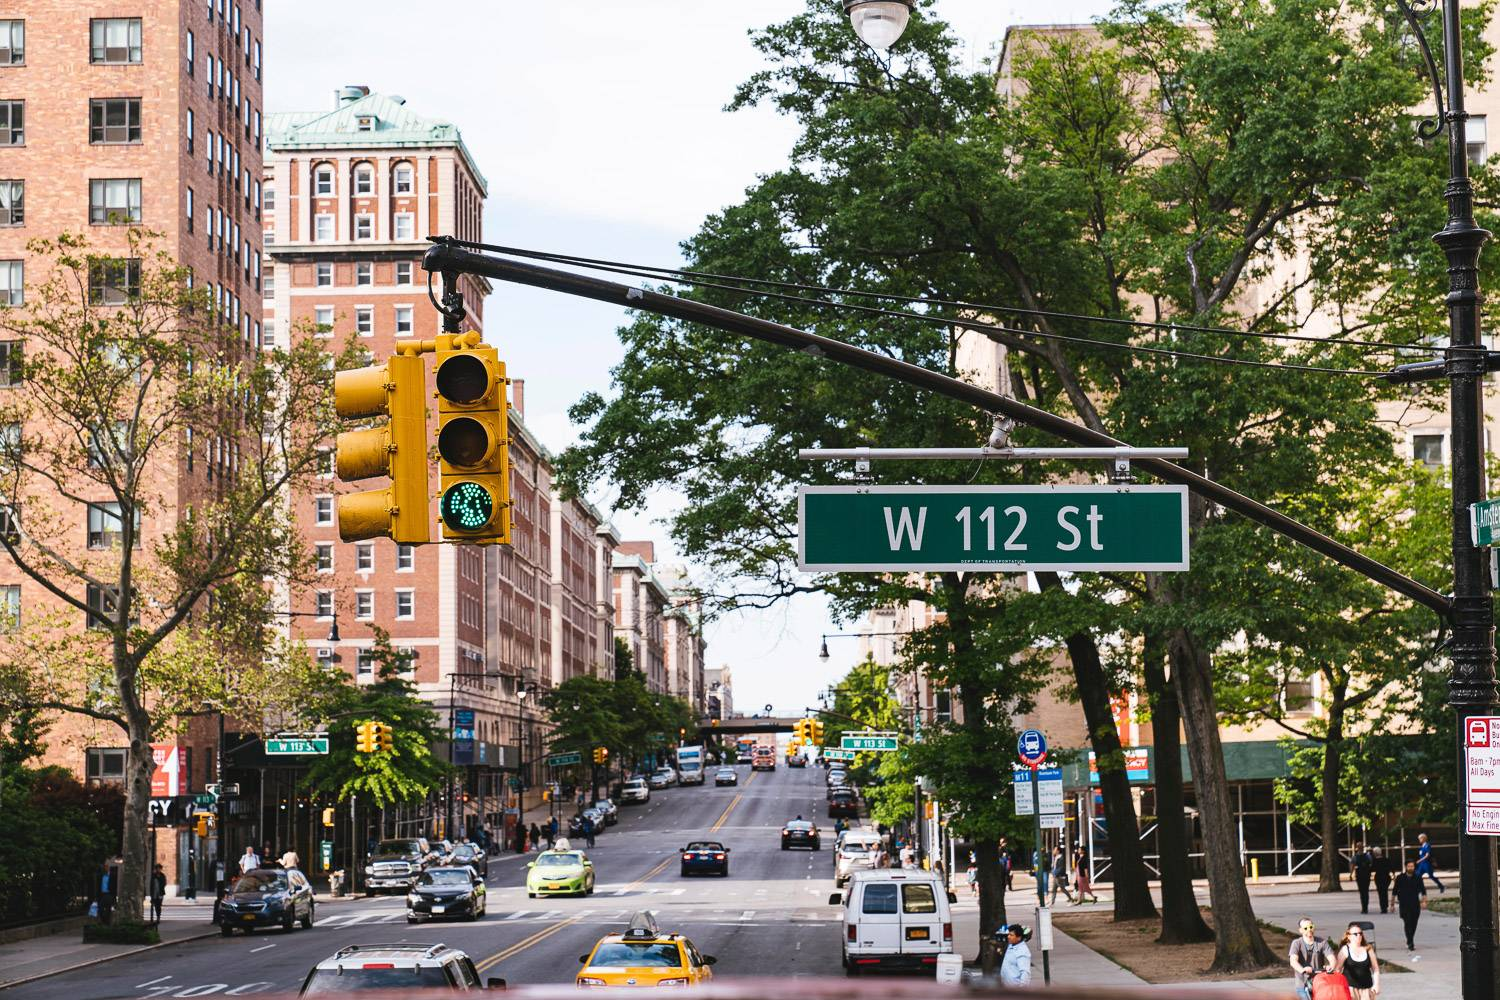 Image of an avenue in NYC with traffic lights and a street sign with West 112th Street